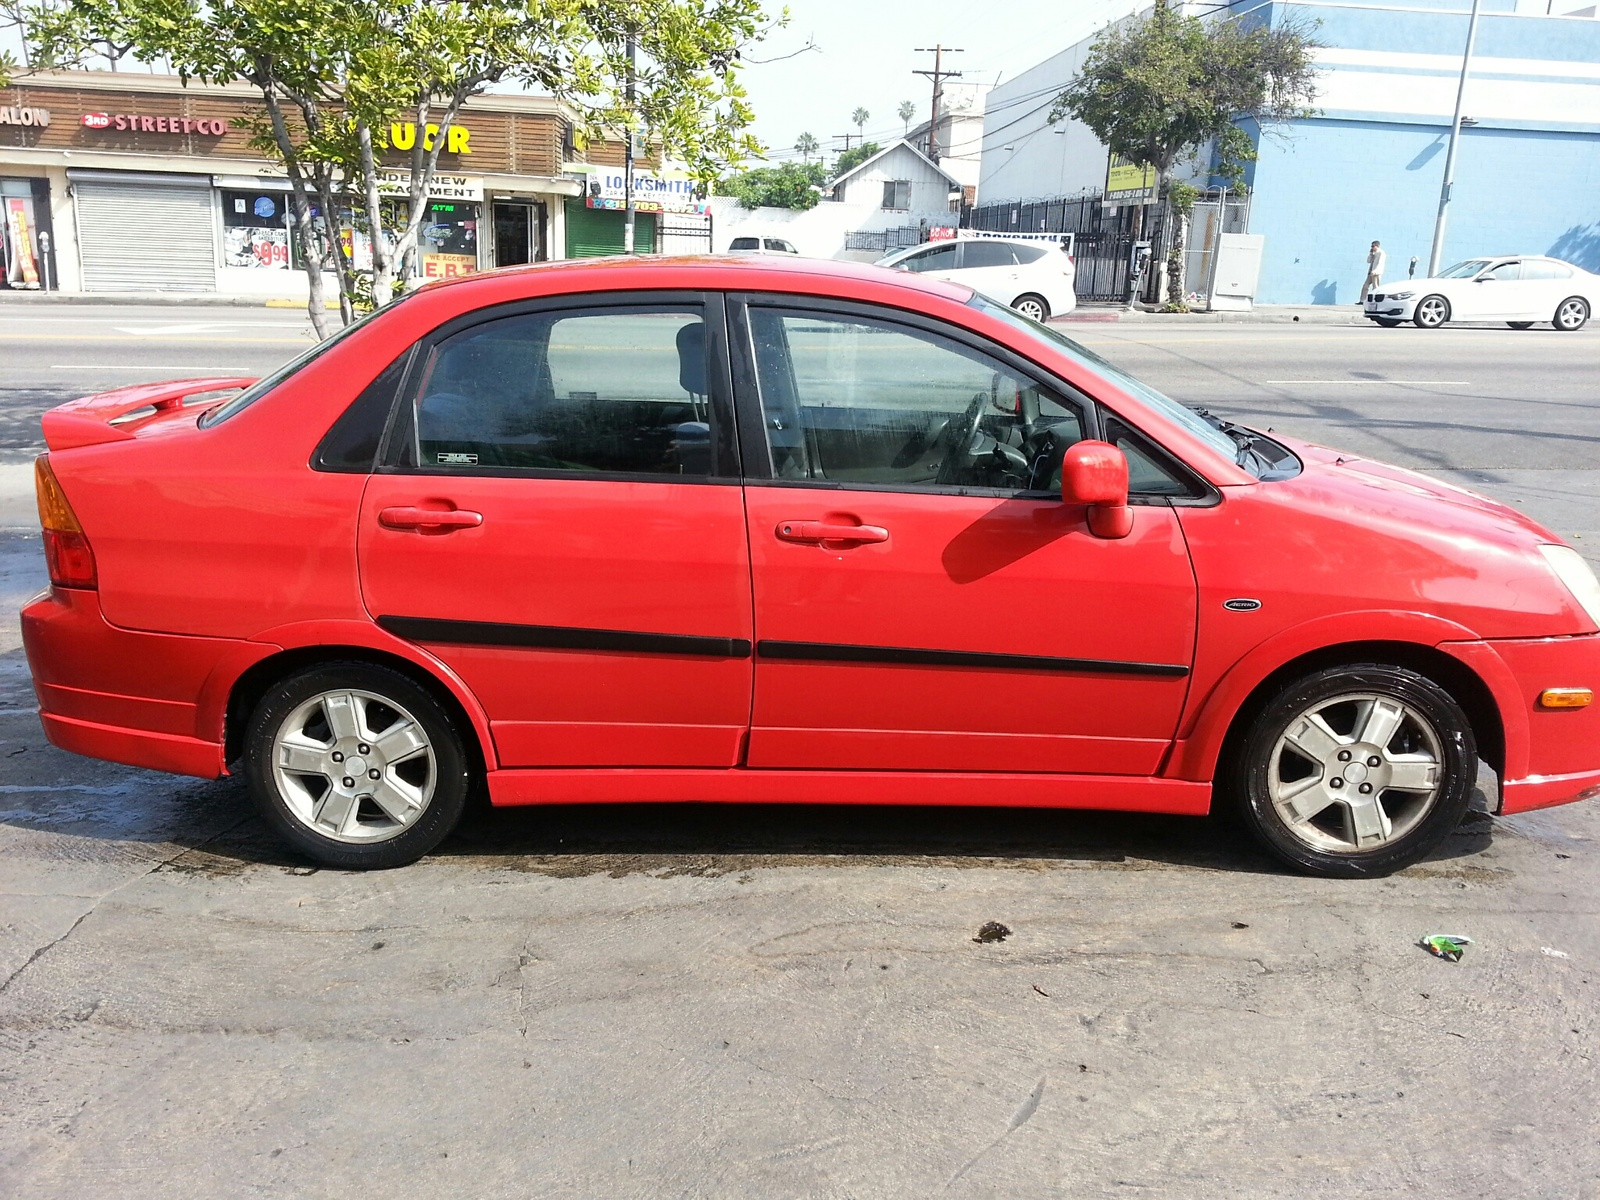 Picture of 2002 Suzuki Aerio 4 Dr GS Sedan